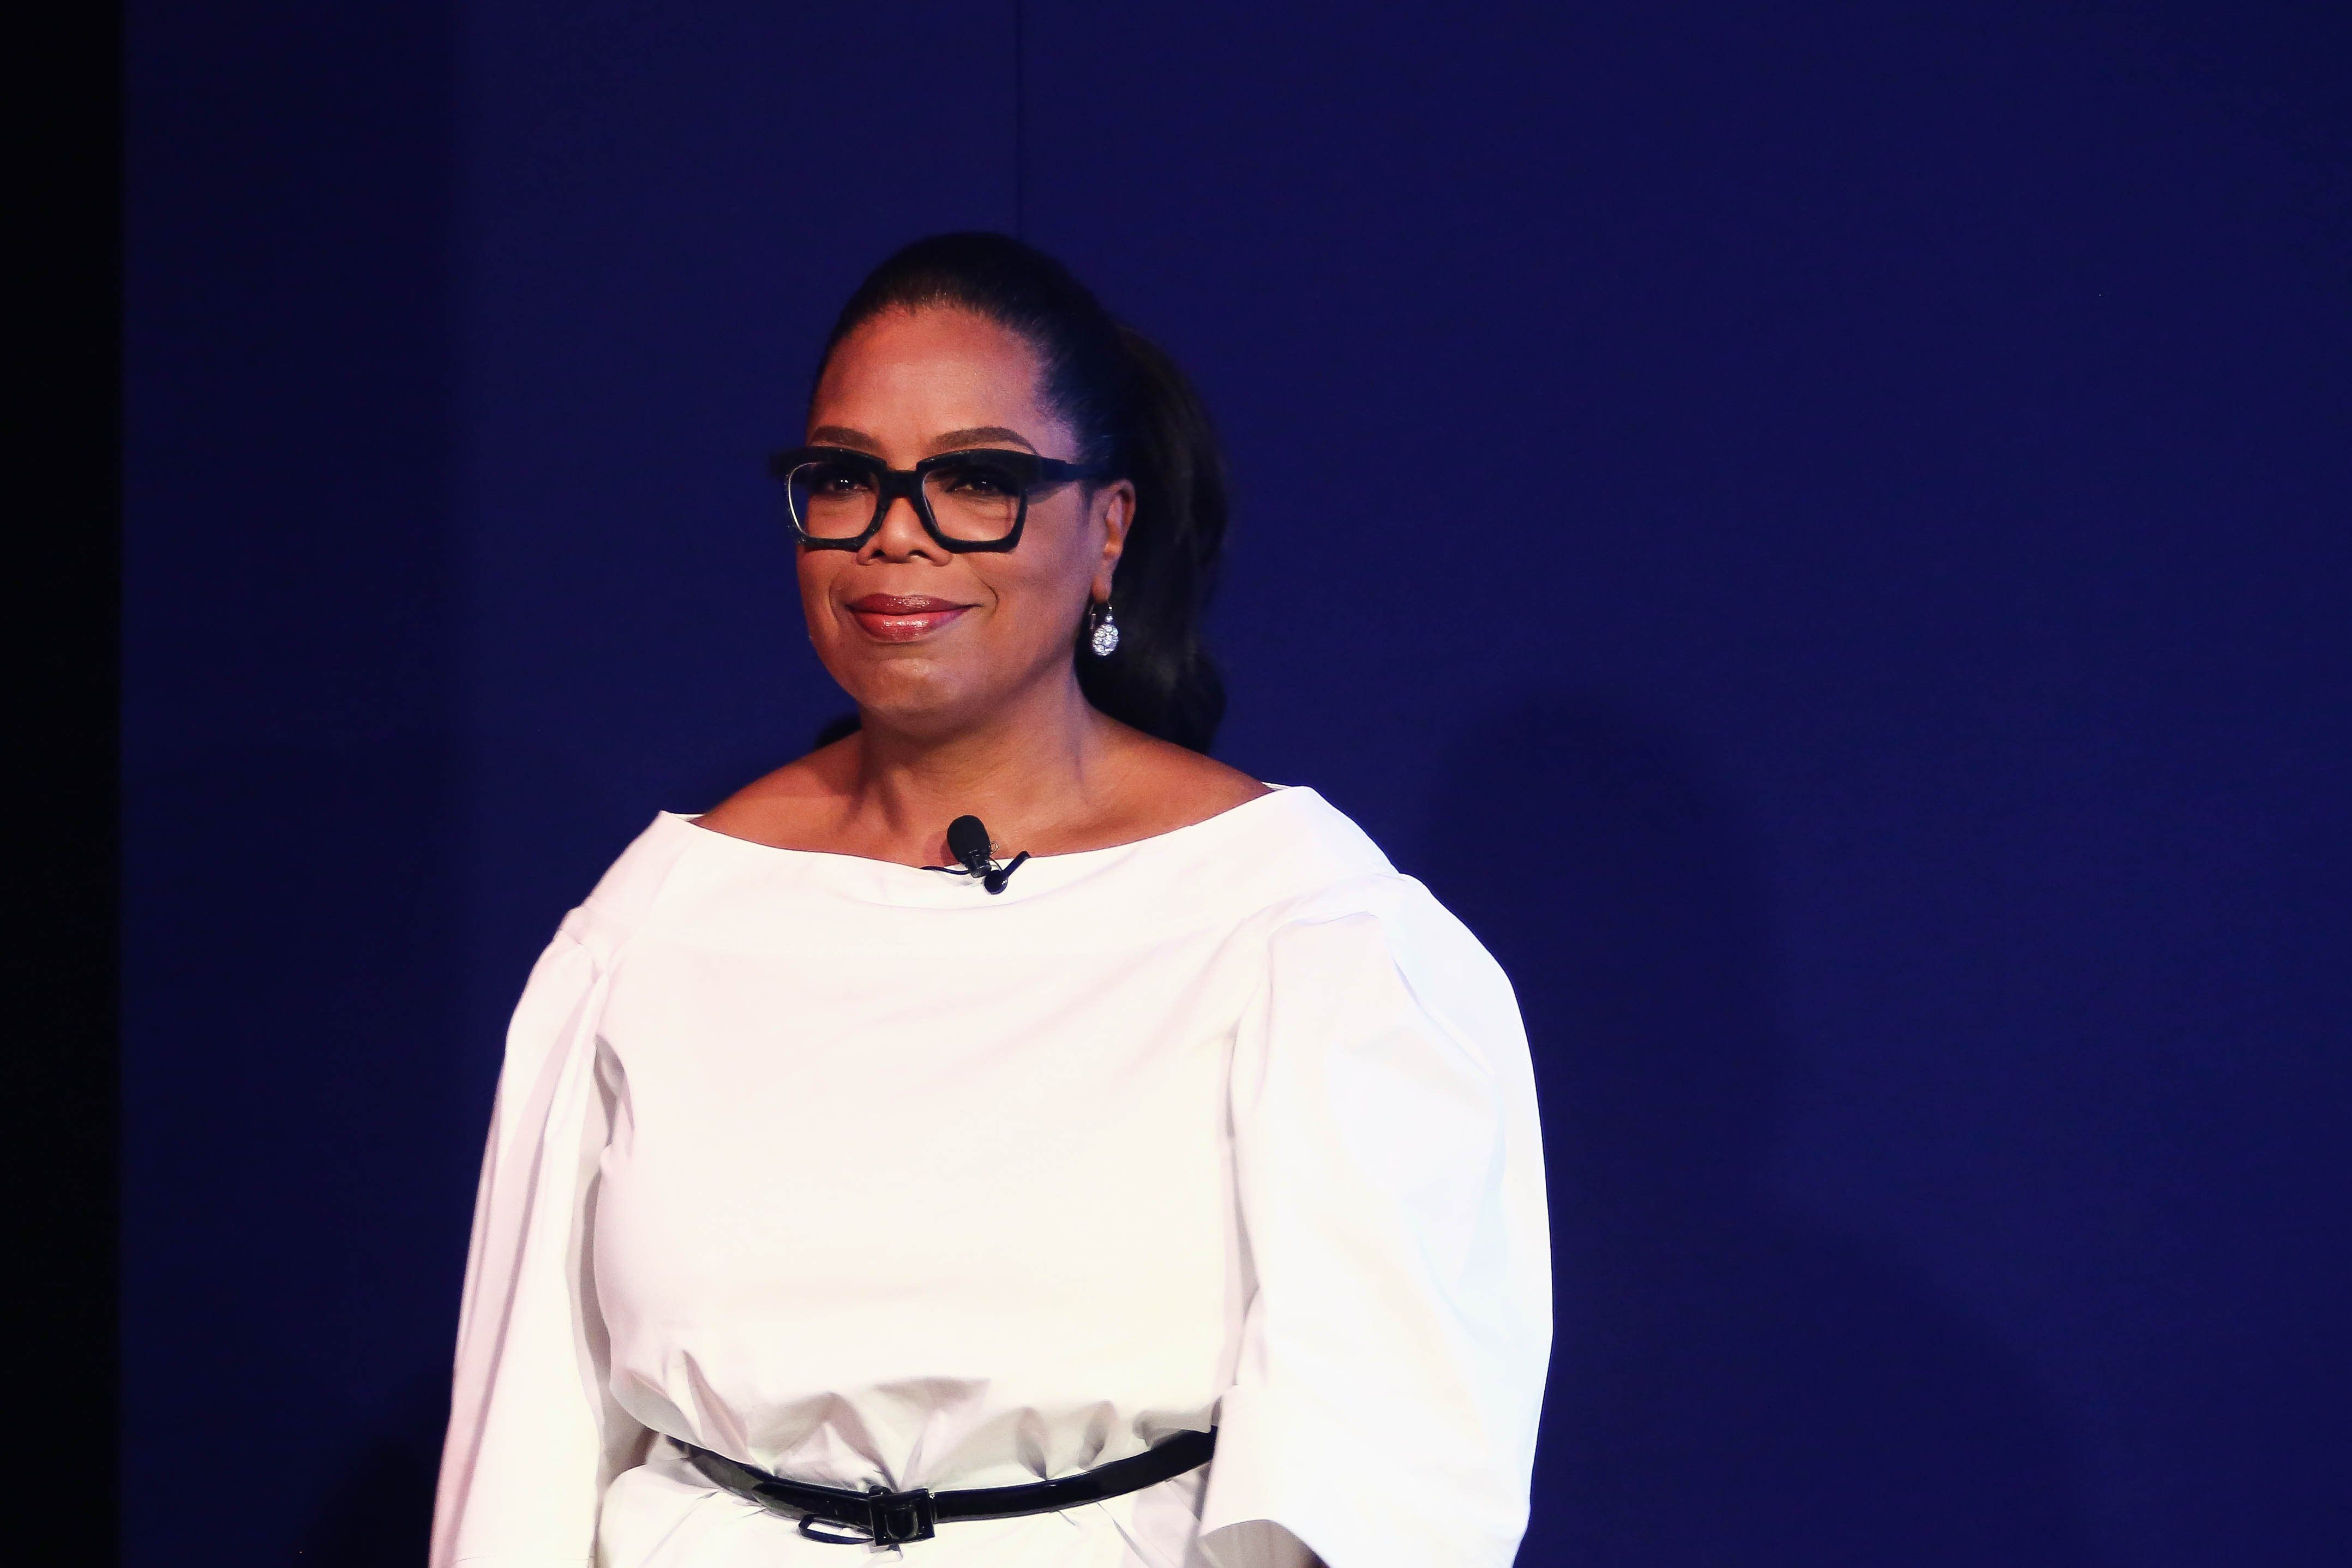 JOHANNESBURG, SOUTH AFRICA  DECEMBER 02: (SOUTH AFRICA OUT): American talkshow host Oprah Winfrey during a Dreams programme event at the Premier Hotel in OR Tambo Airport on December 02, 2016 in Johannesburg, South Africa. Winfrey surprised the youth ambassadors enrolled in the US embassy HIV awareness programme aimed at reducing the HIV infection in adolescent girls when she shared her inspirational story of overcoming poverty and sexual assault. (Photo by Moeletsi Mabe/Sunday Times/Gallo Images/Getty Images)